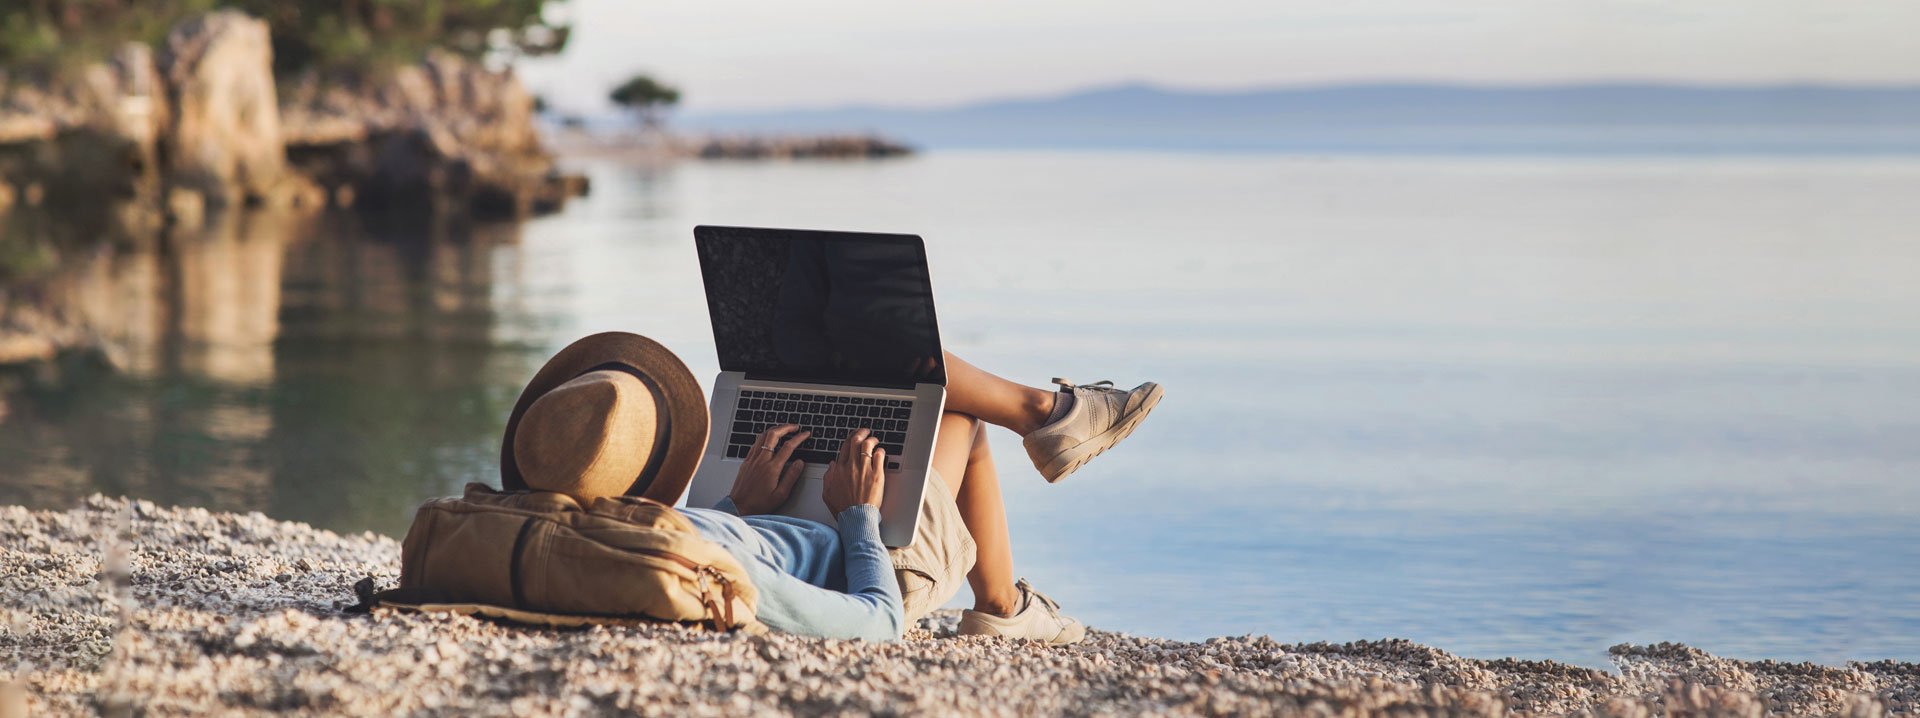 woman using a laptop on the beach